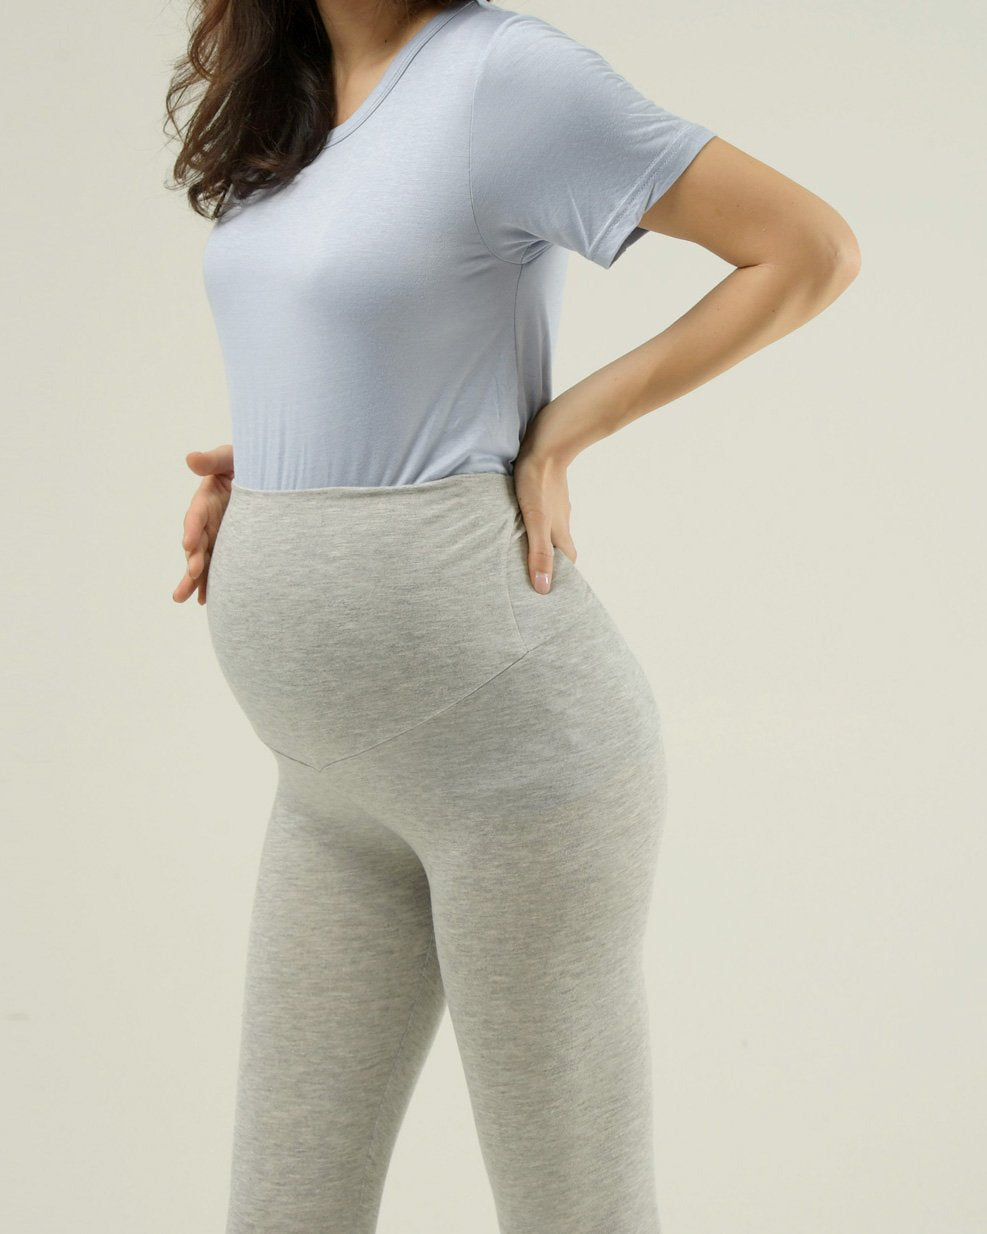 AIRY TENCEL LEGGINGS